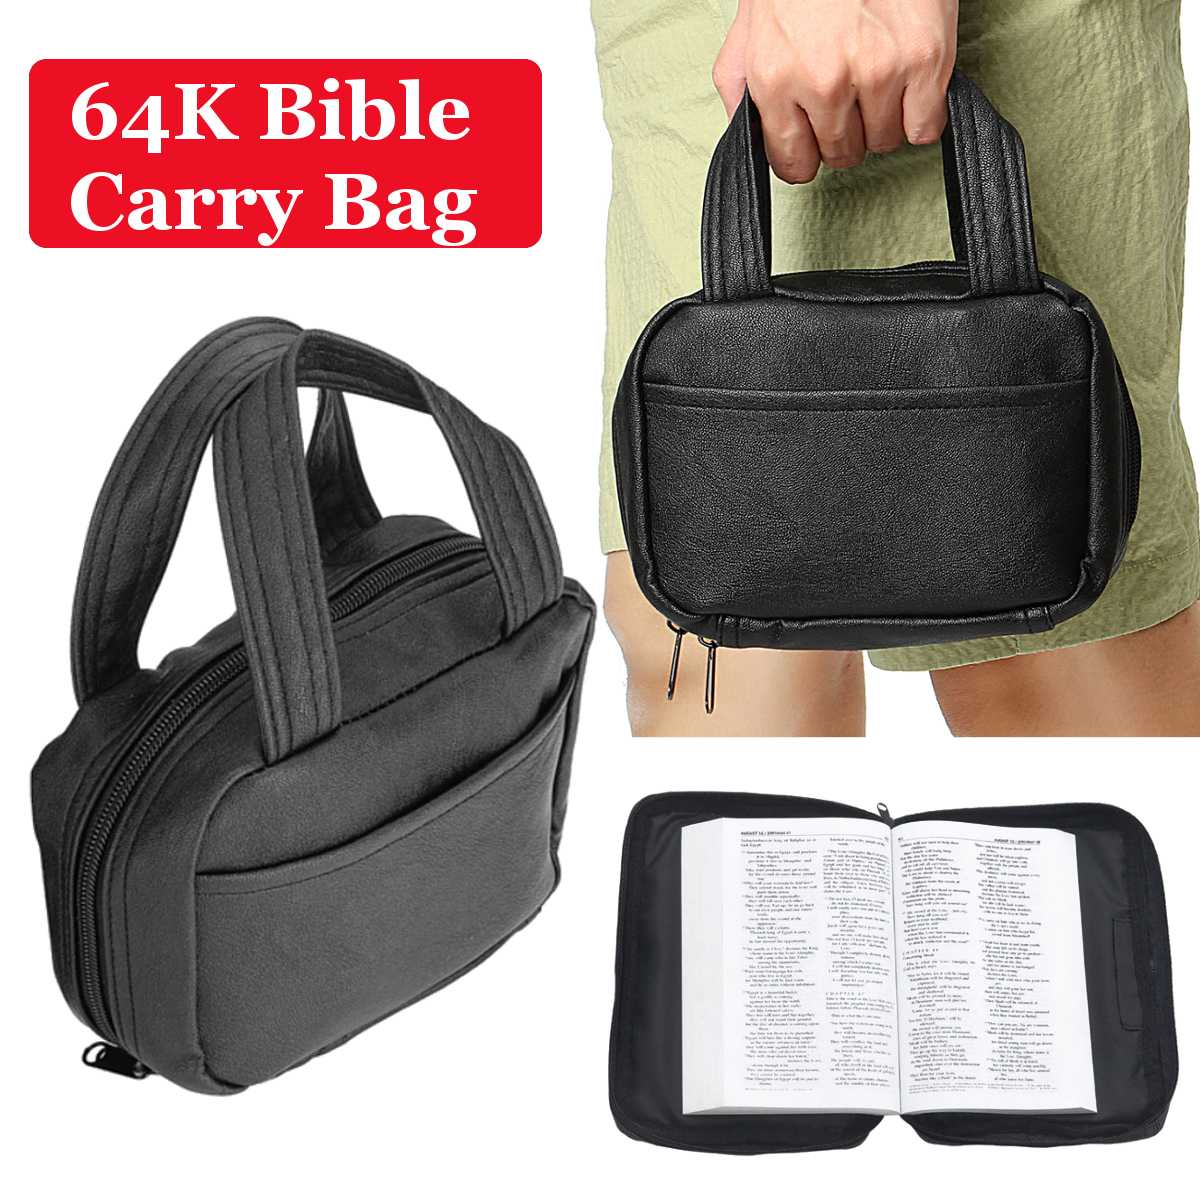 Black Genuine Leather Portable Bible Book Cover Protecter Bag For 64K Bible Book Bible Holy Carry Bag Bible Study Book Handbag